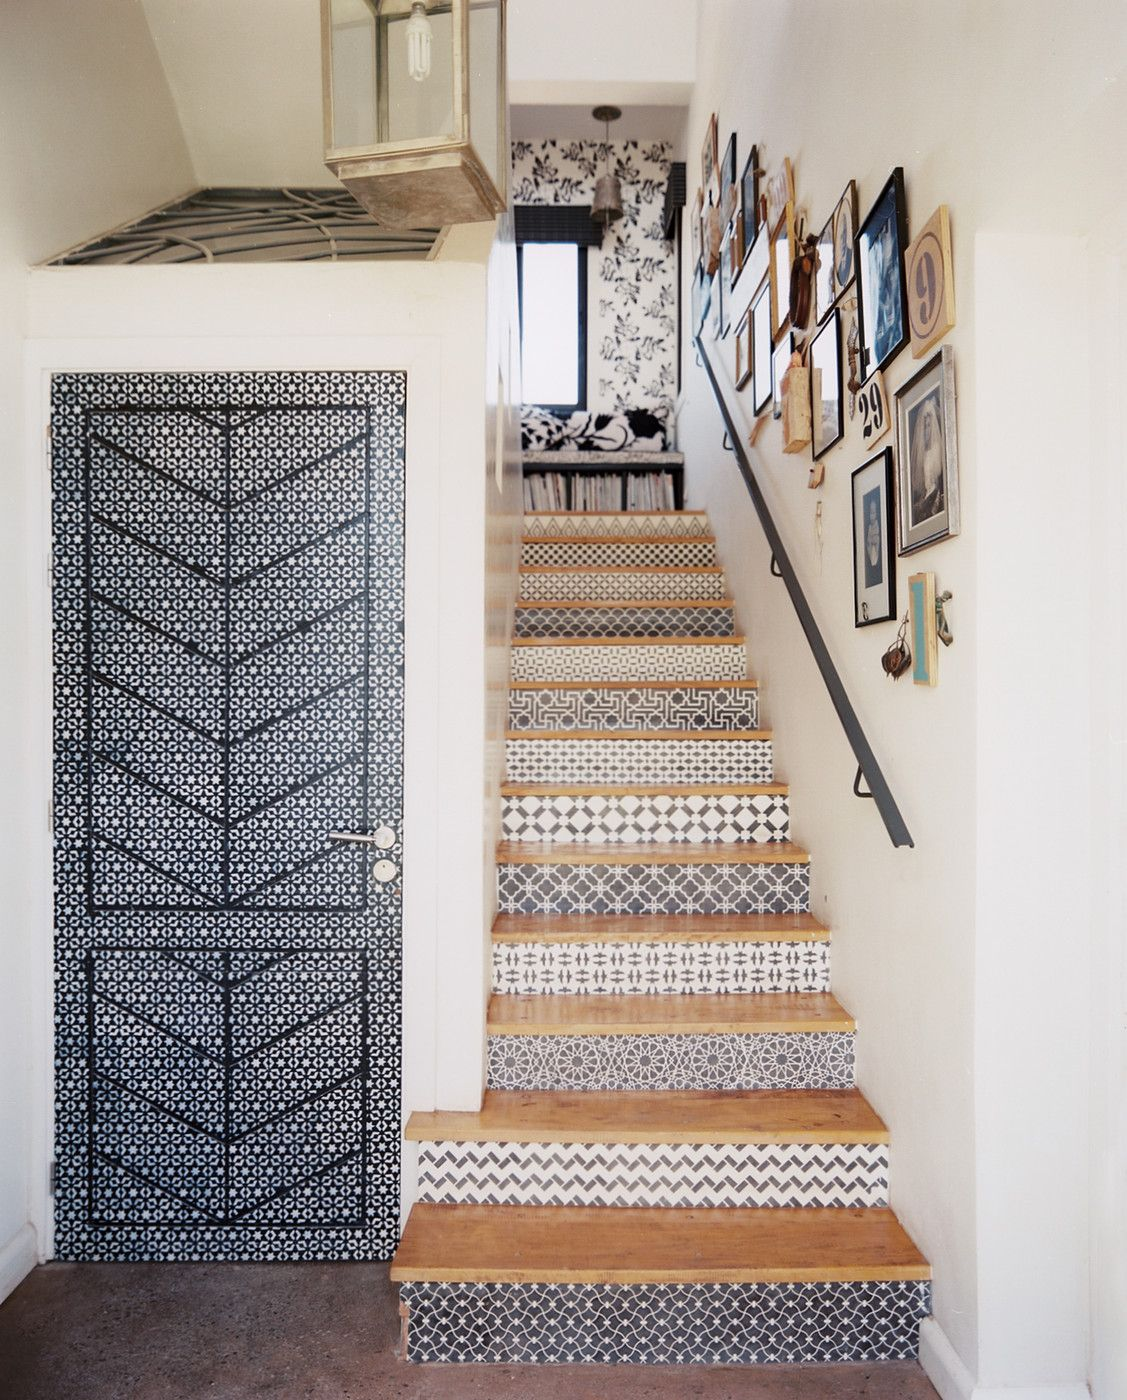 Wallpapered Stair Risers Deco Escalier Deco Maison Idee Deco